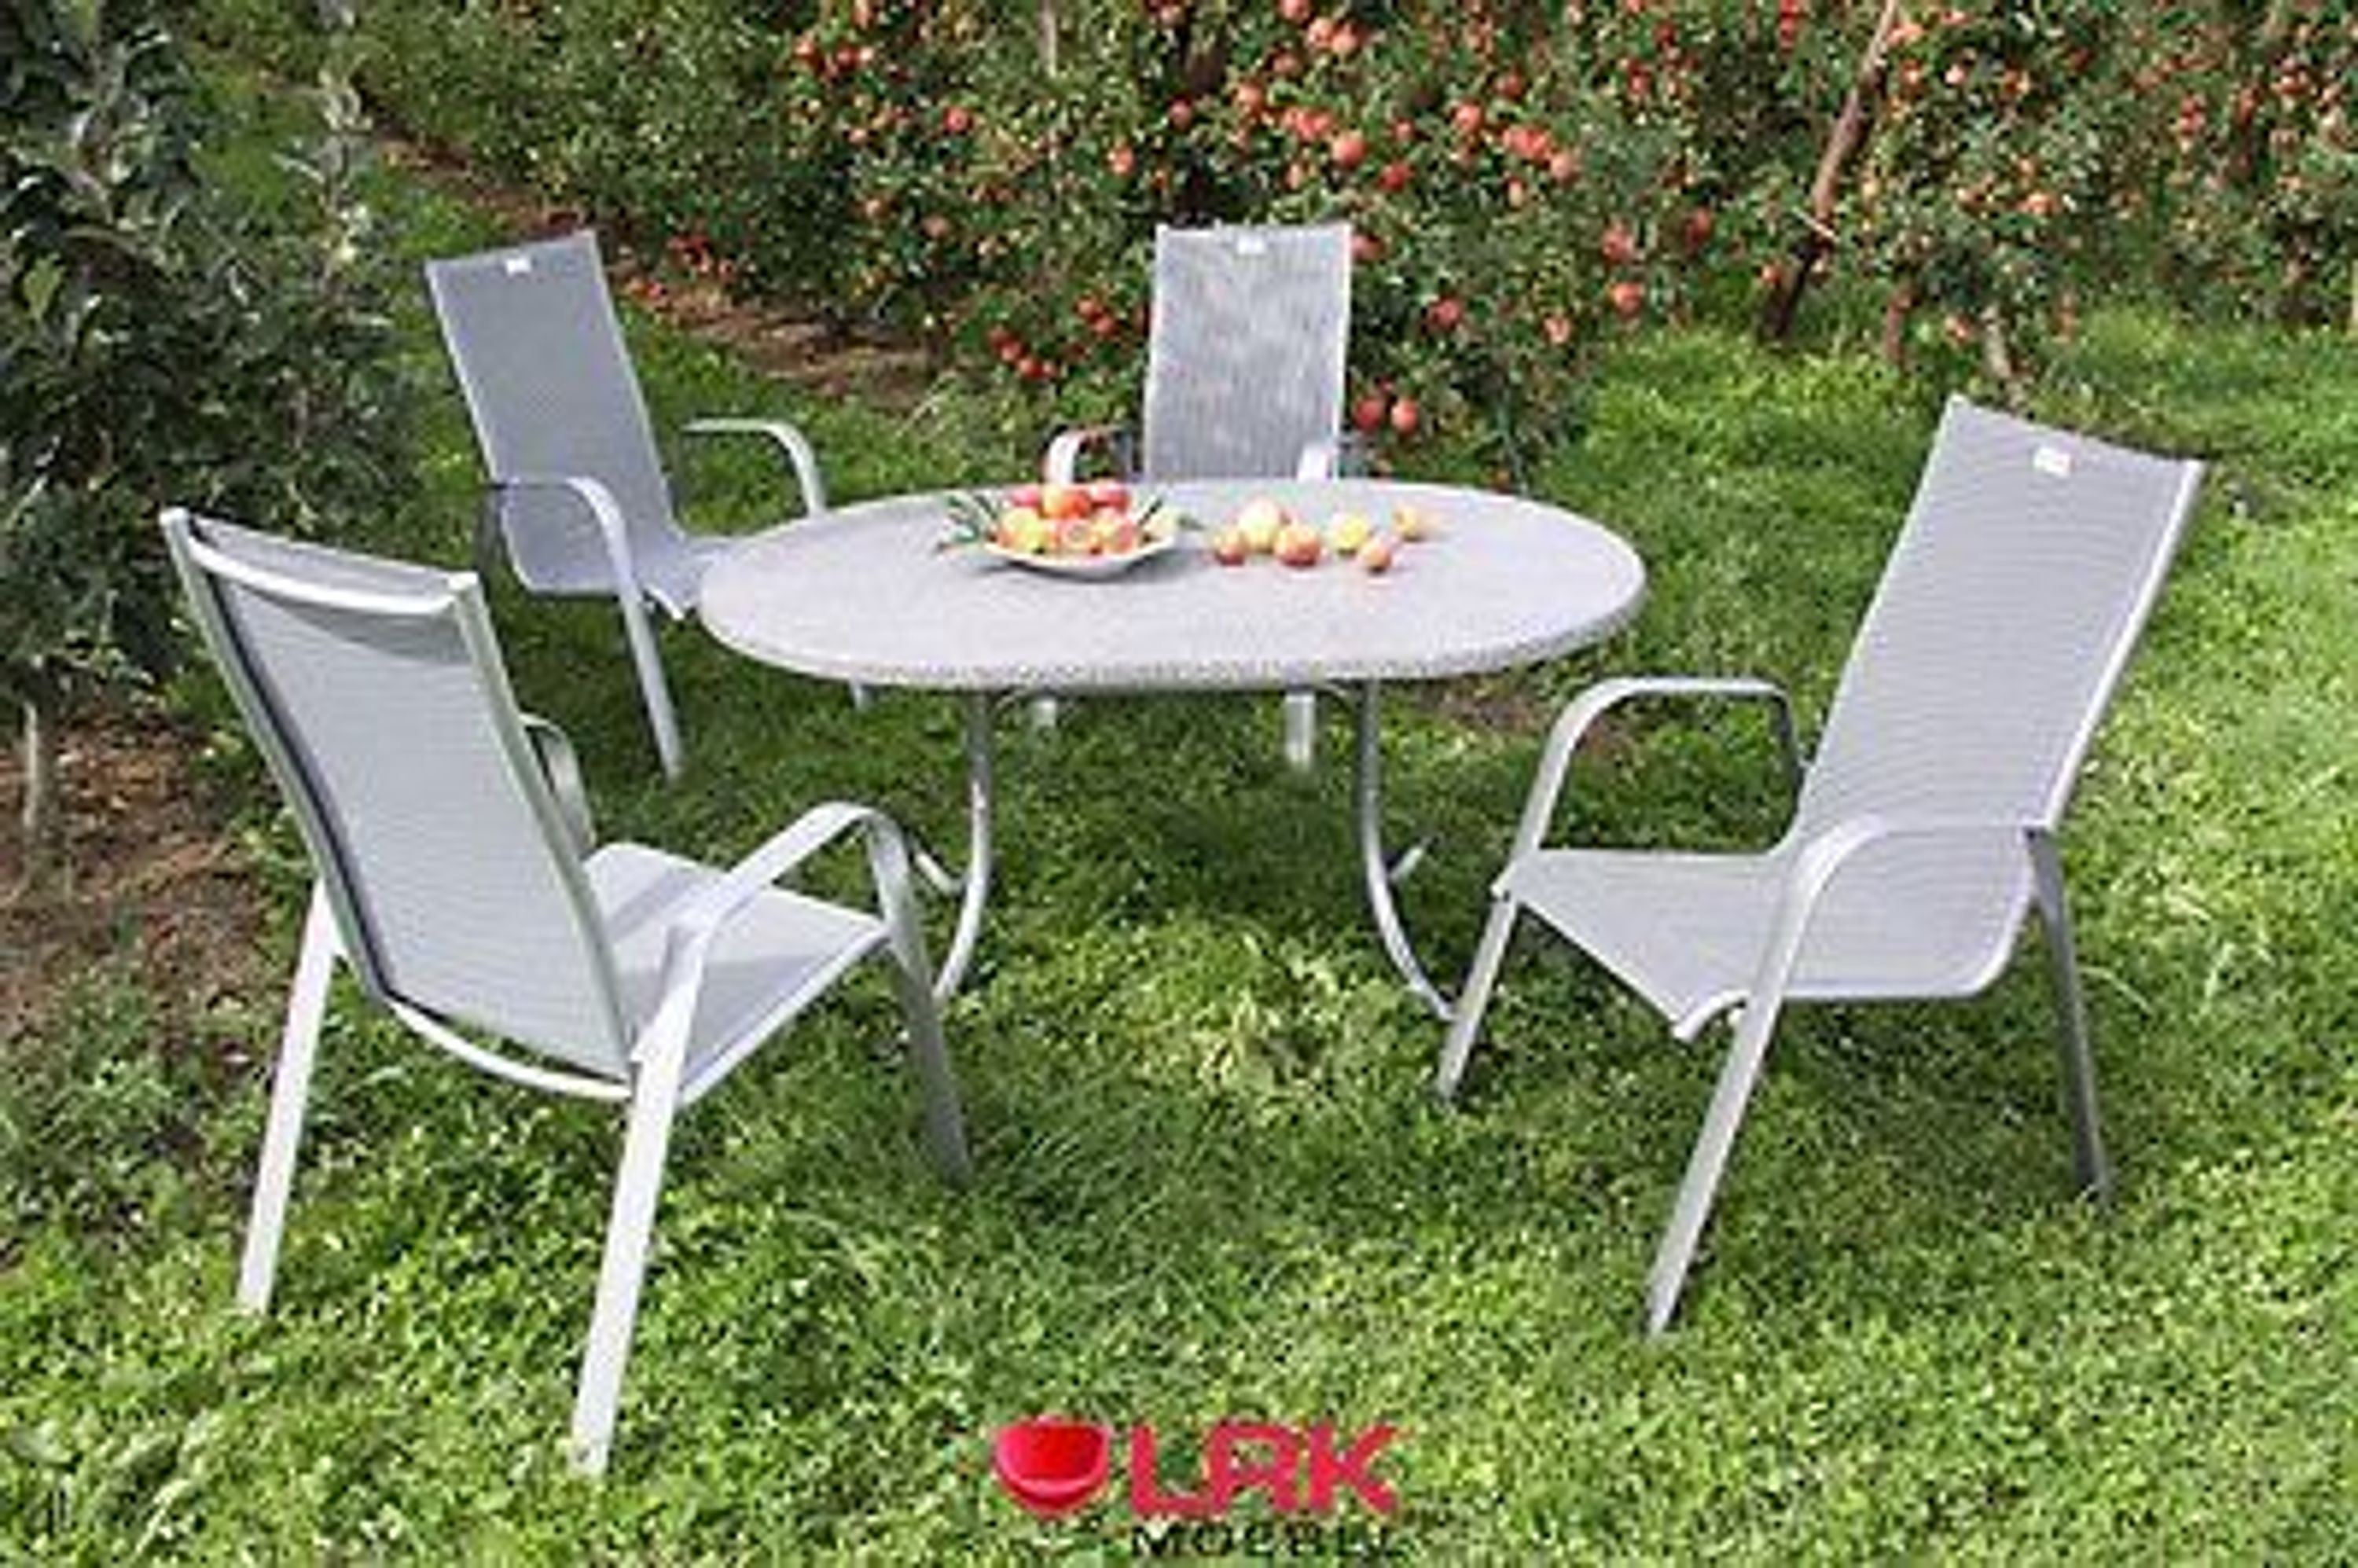 acamp gartentisch tisch gartenm bel m bel garten klappbar oval 146x94 cm neu kaufen bei. Black Bedroom Furniture Sets. Home Design Ideas